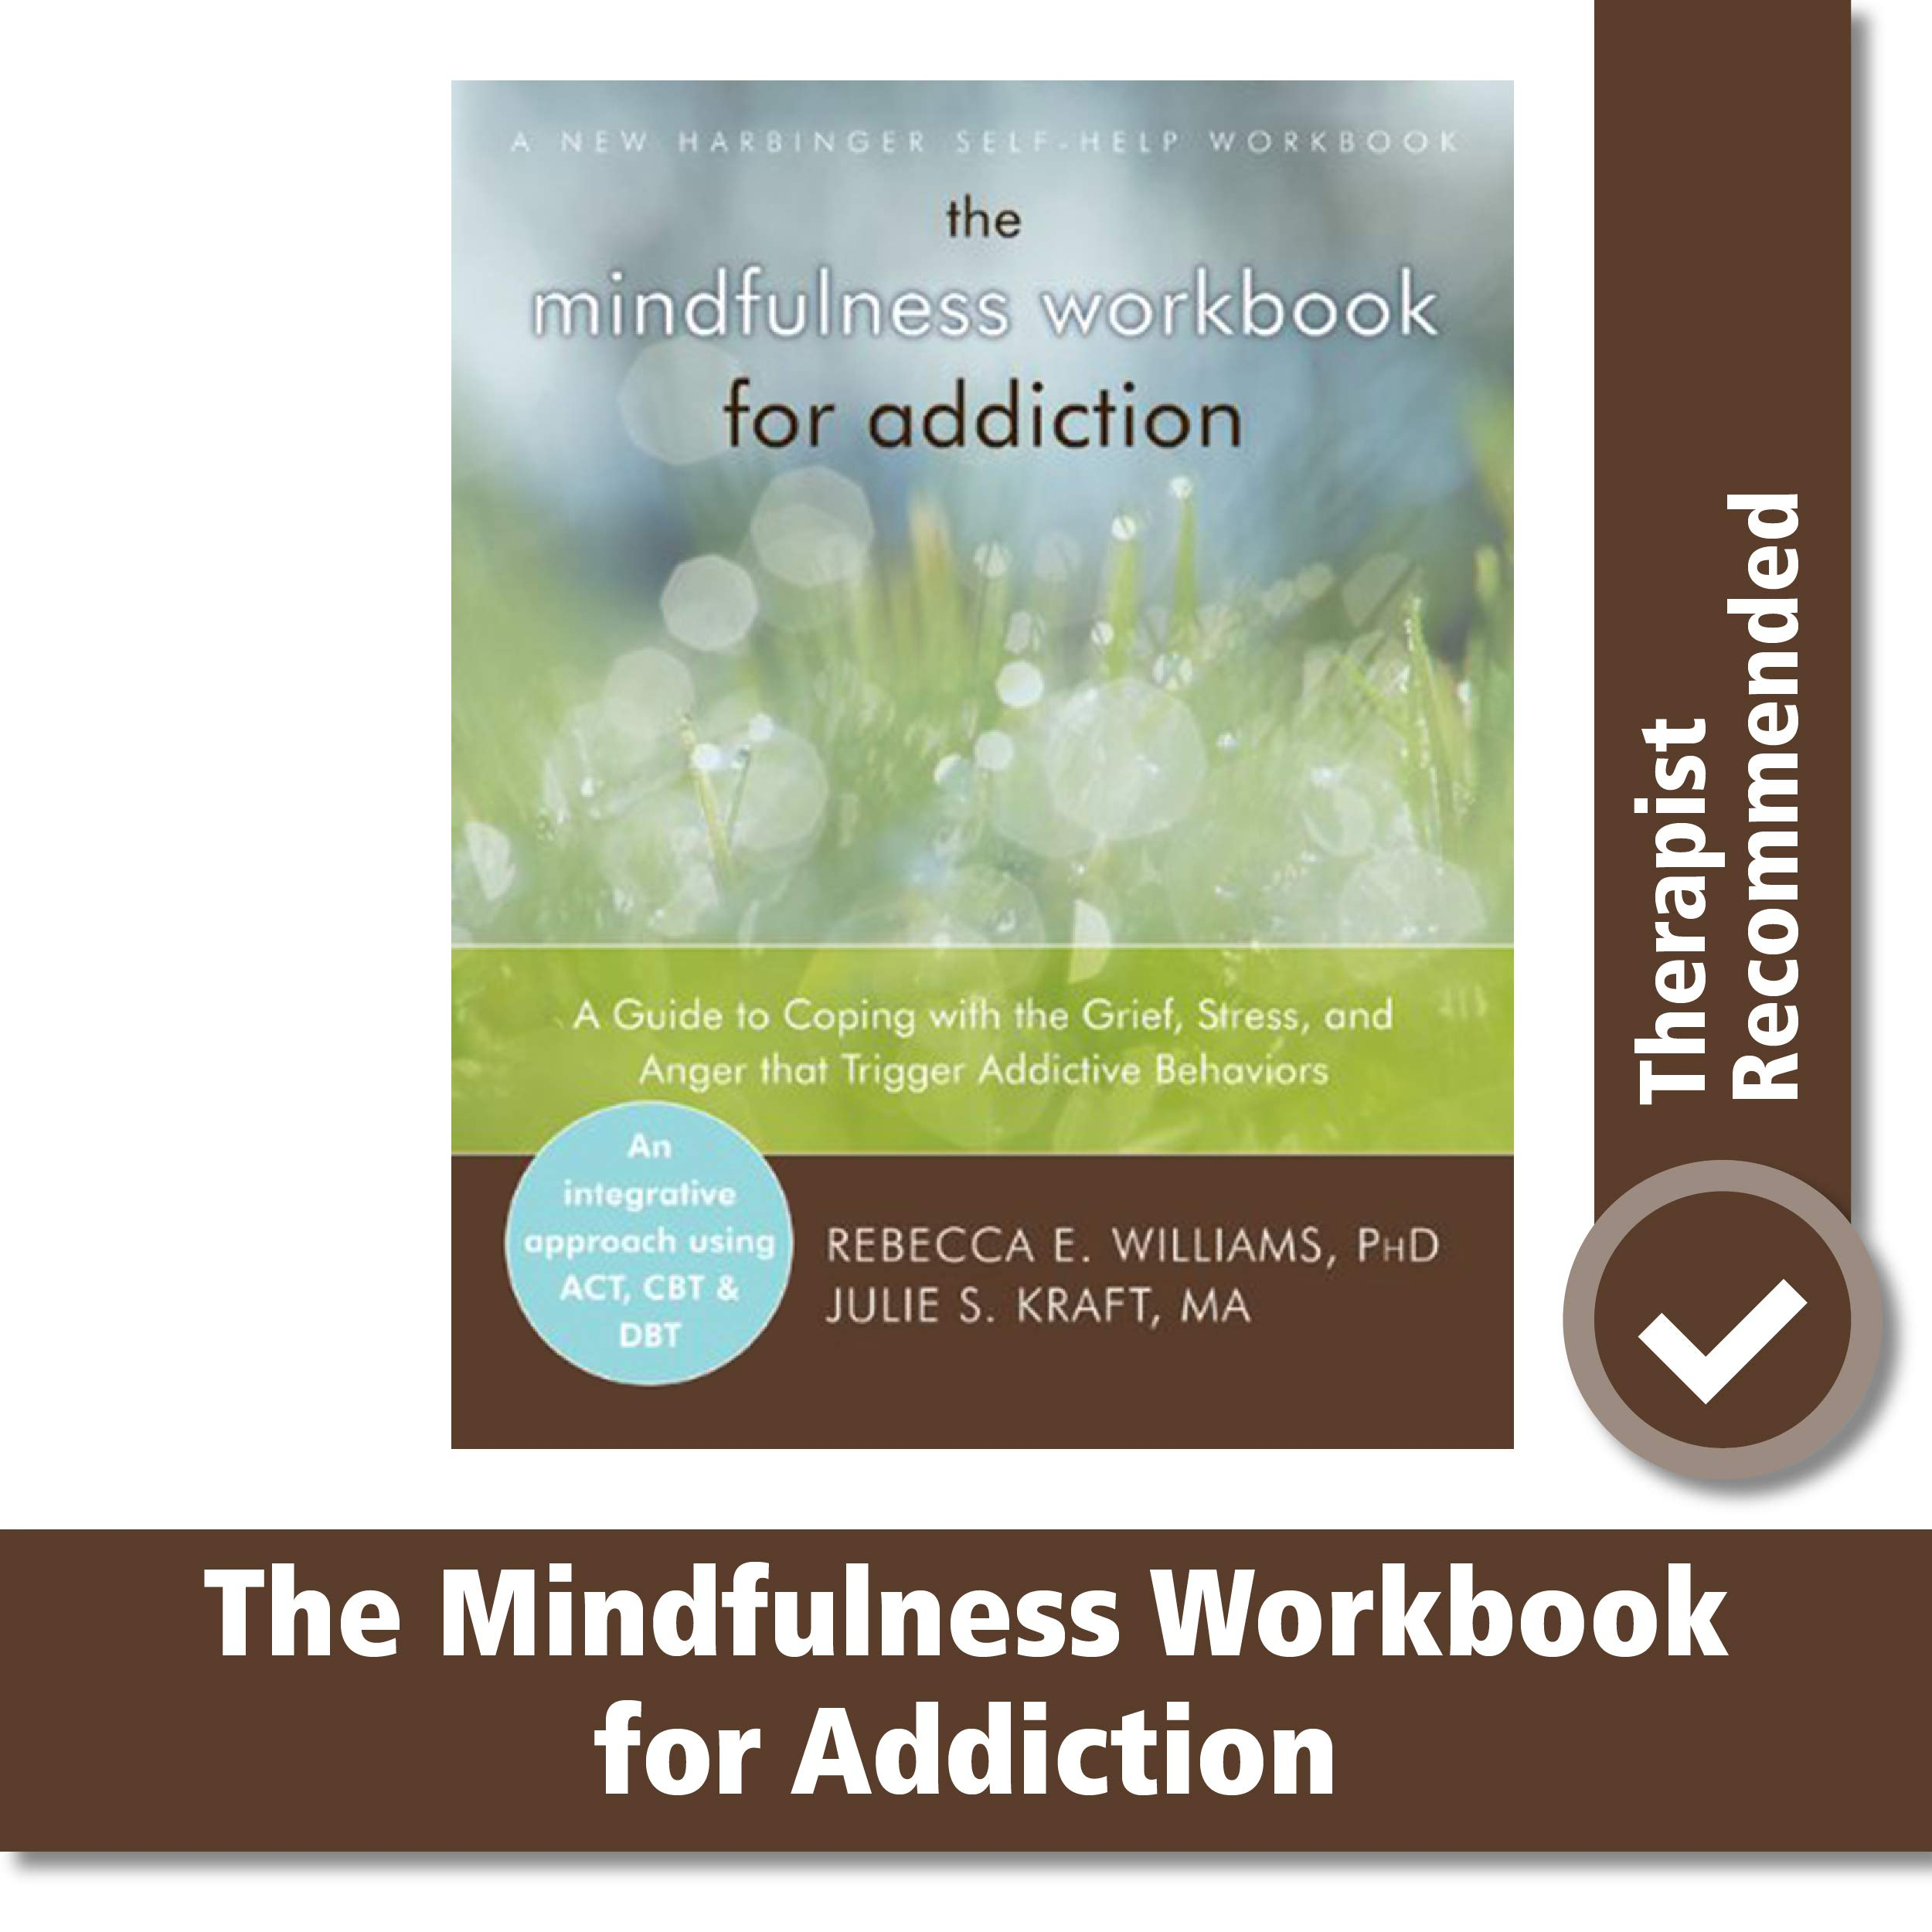 Image OfThe Mindfulness Workbook For Addiction: A Guide To Coping With The Grief, Stress And Anger That Trigger Addictive Behavior...